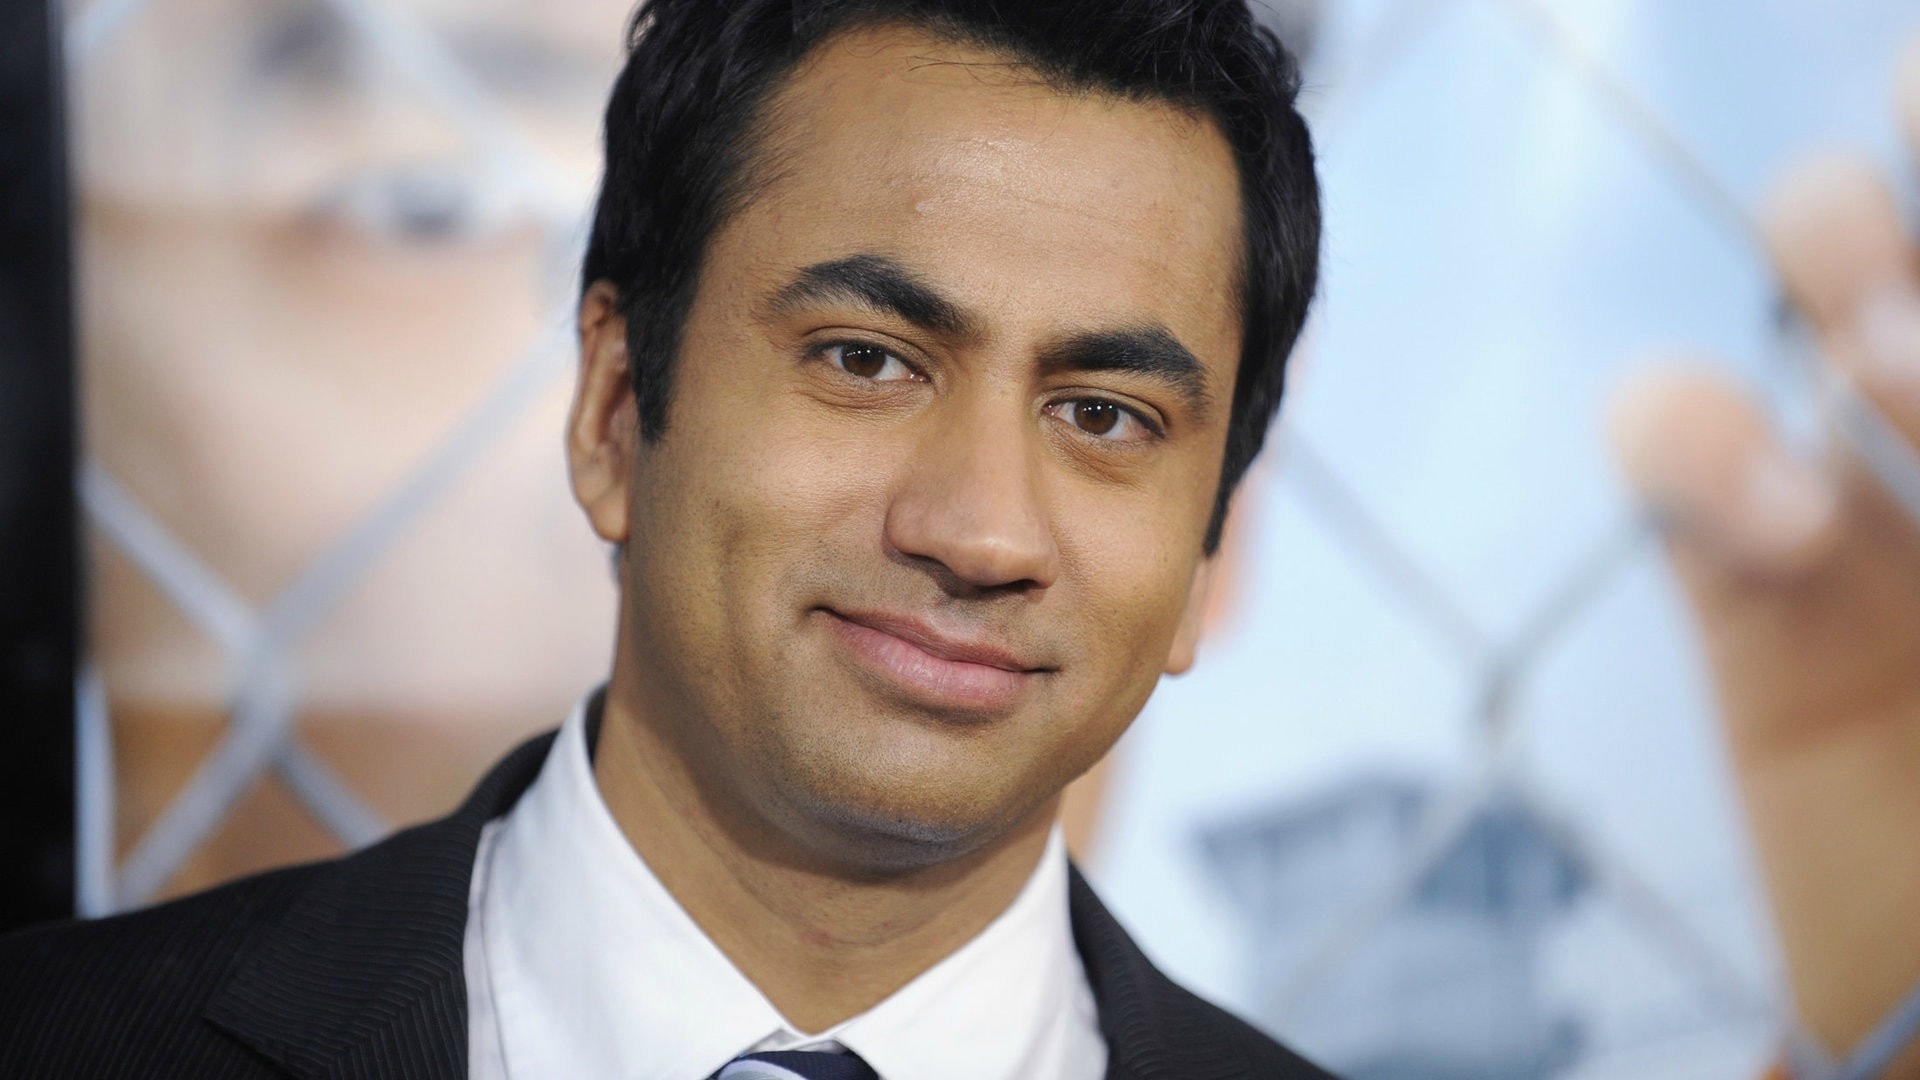 Kal Penn gets told he doesn't belong in the US, starts fundraising for Syrian refugees